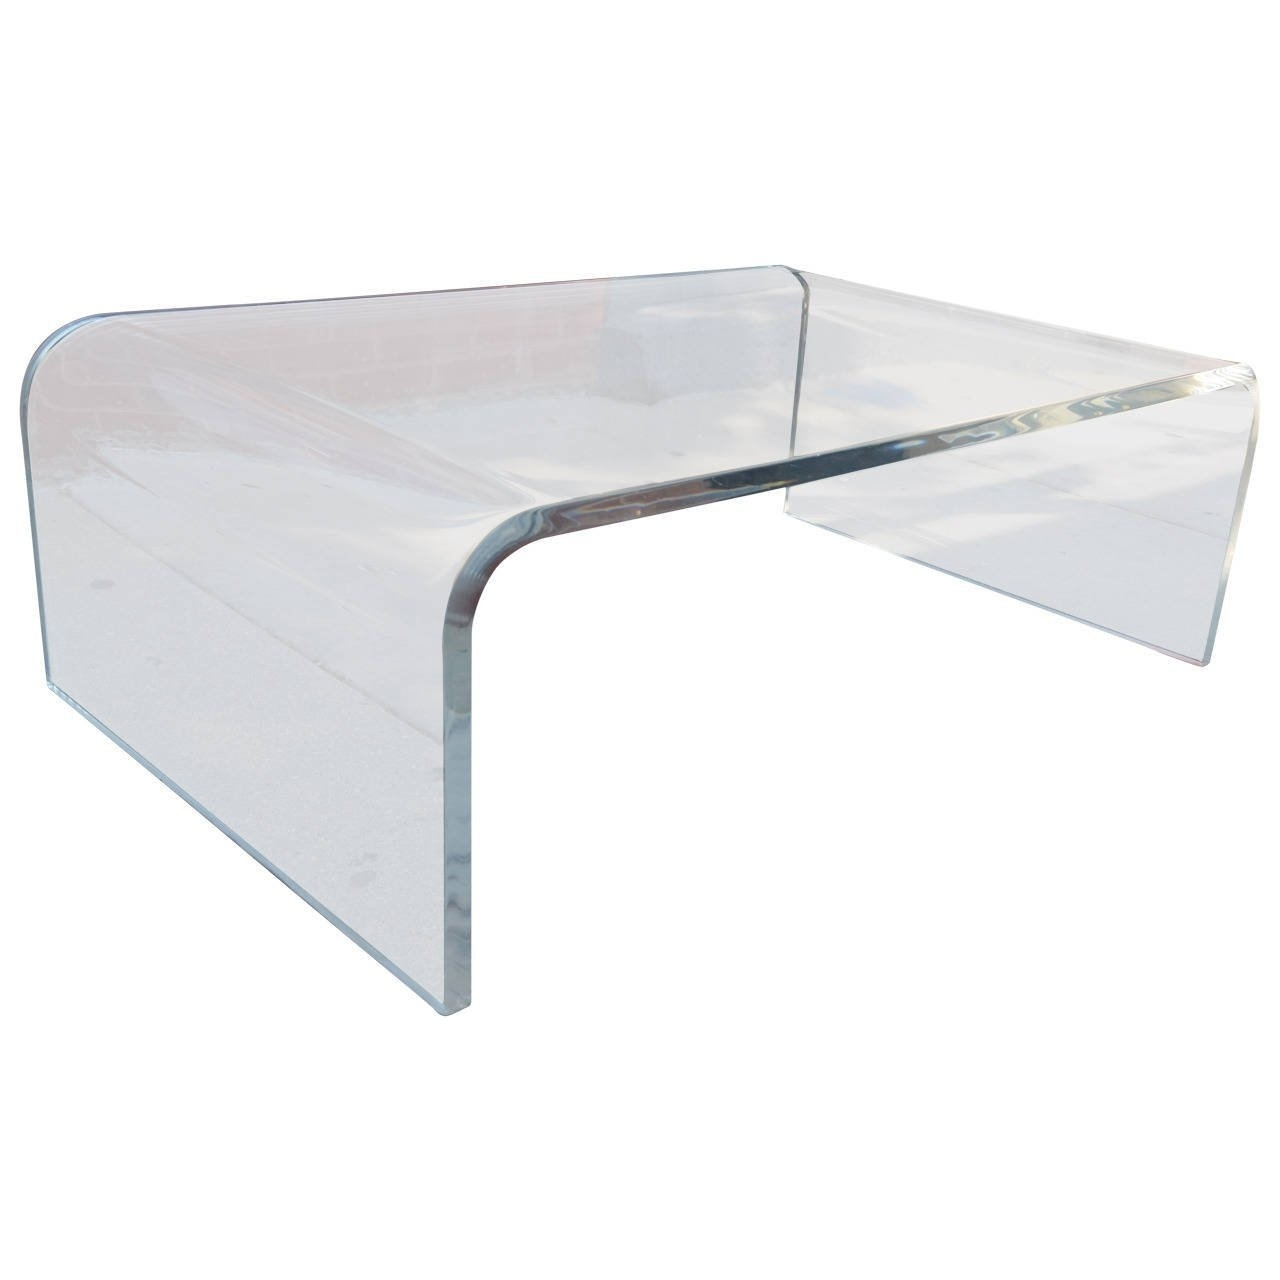 Posh New Acrylic Coffee Table Ideas Acrylic Coffee Tabledesigns That intended for Peekaboo Acrylic Coffee Tables (Image 26 of 30)